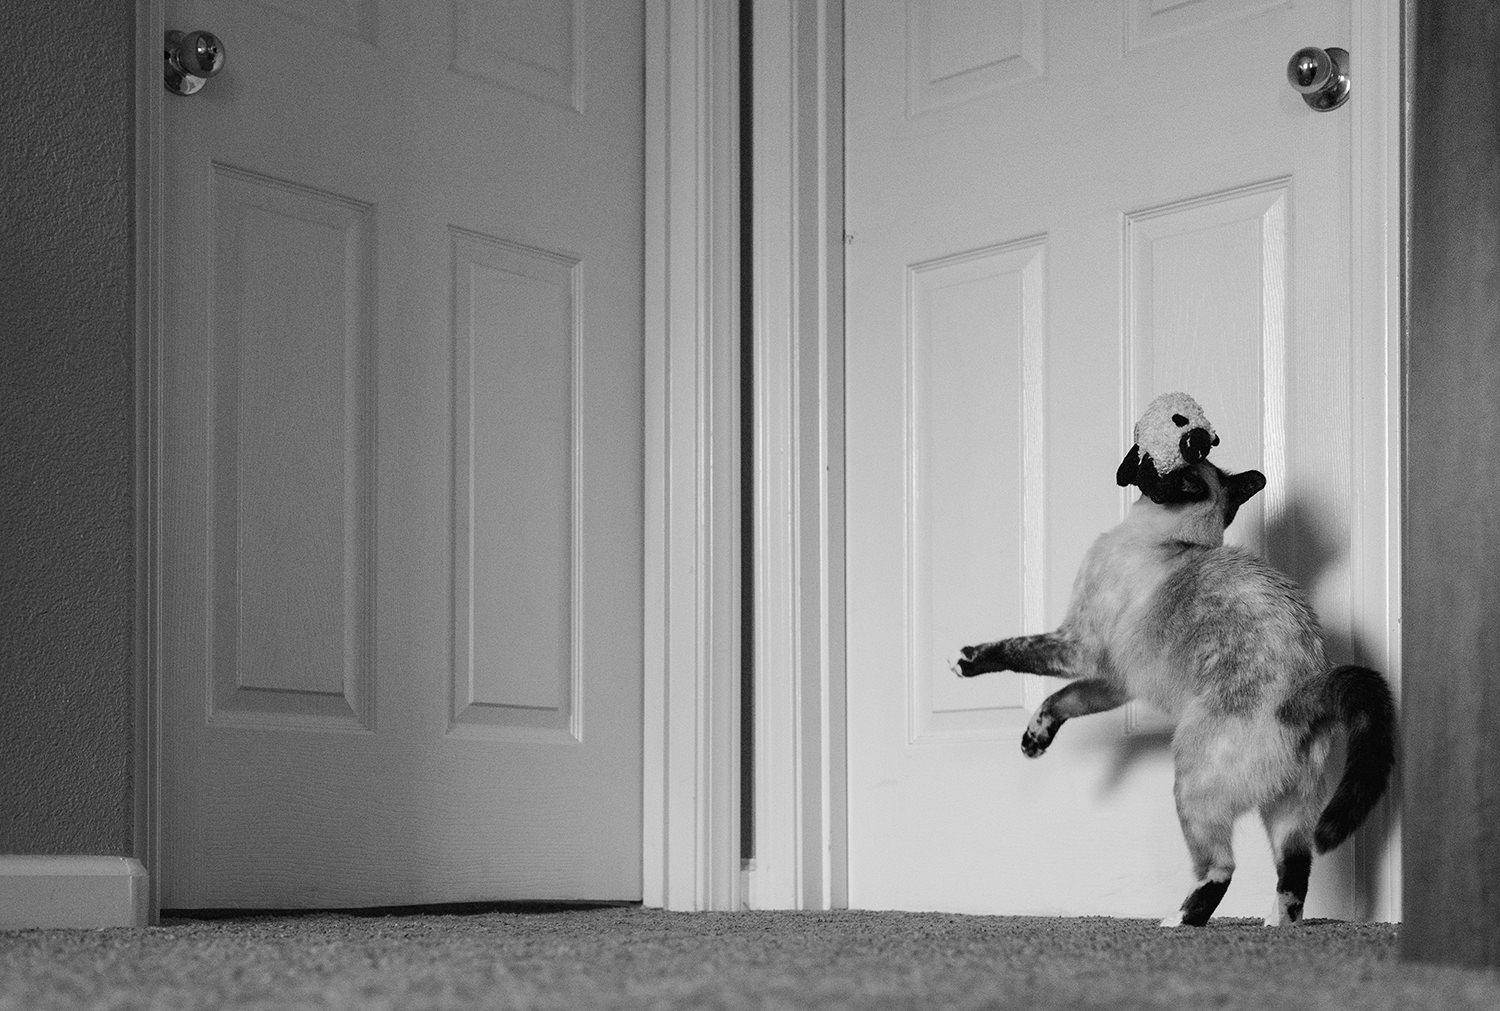 Cat playing with her favorite toy – a little stuffed sheep in front of white doors